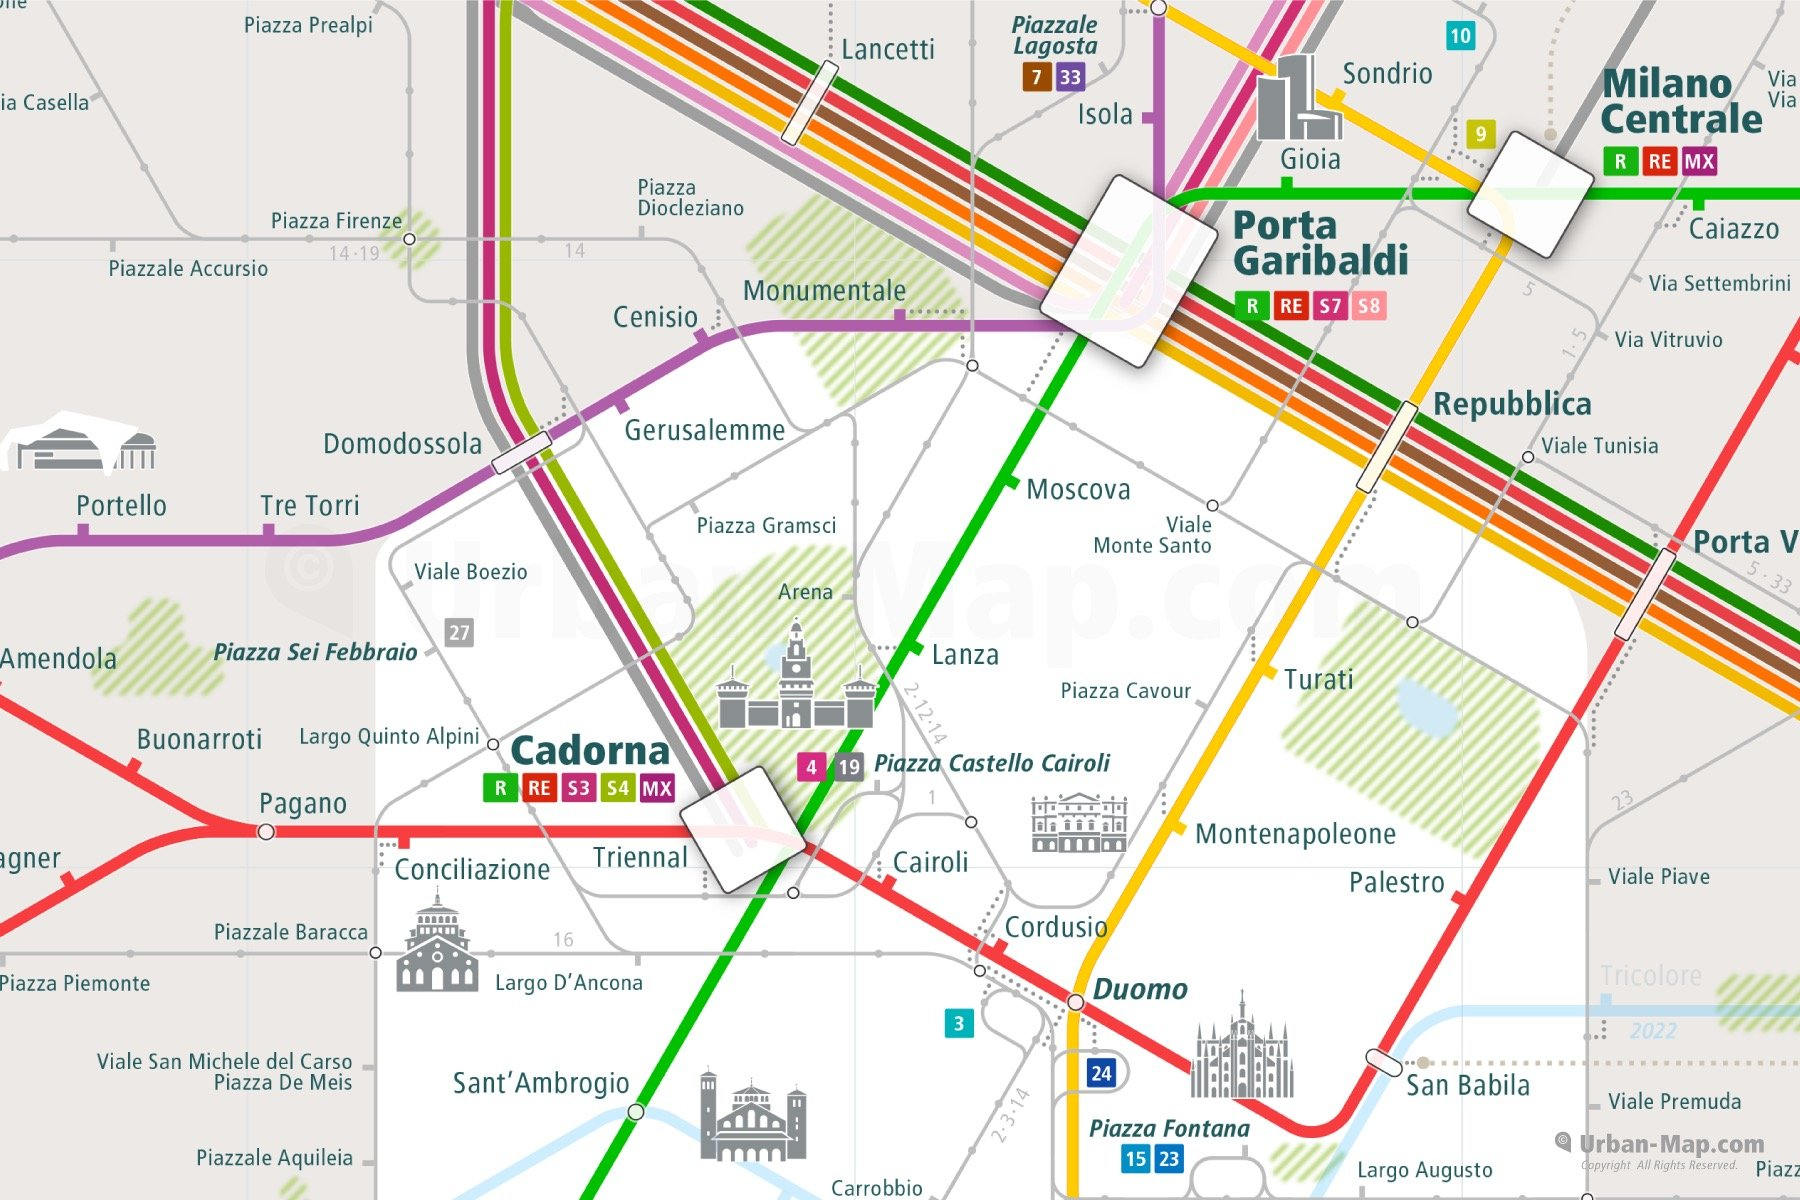 Milan City Rail Map shows the train and public transportation routes of metro, commuter train, tram - Close-Up